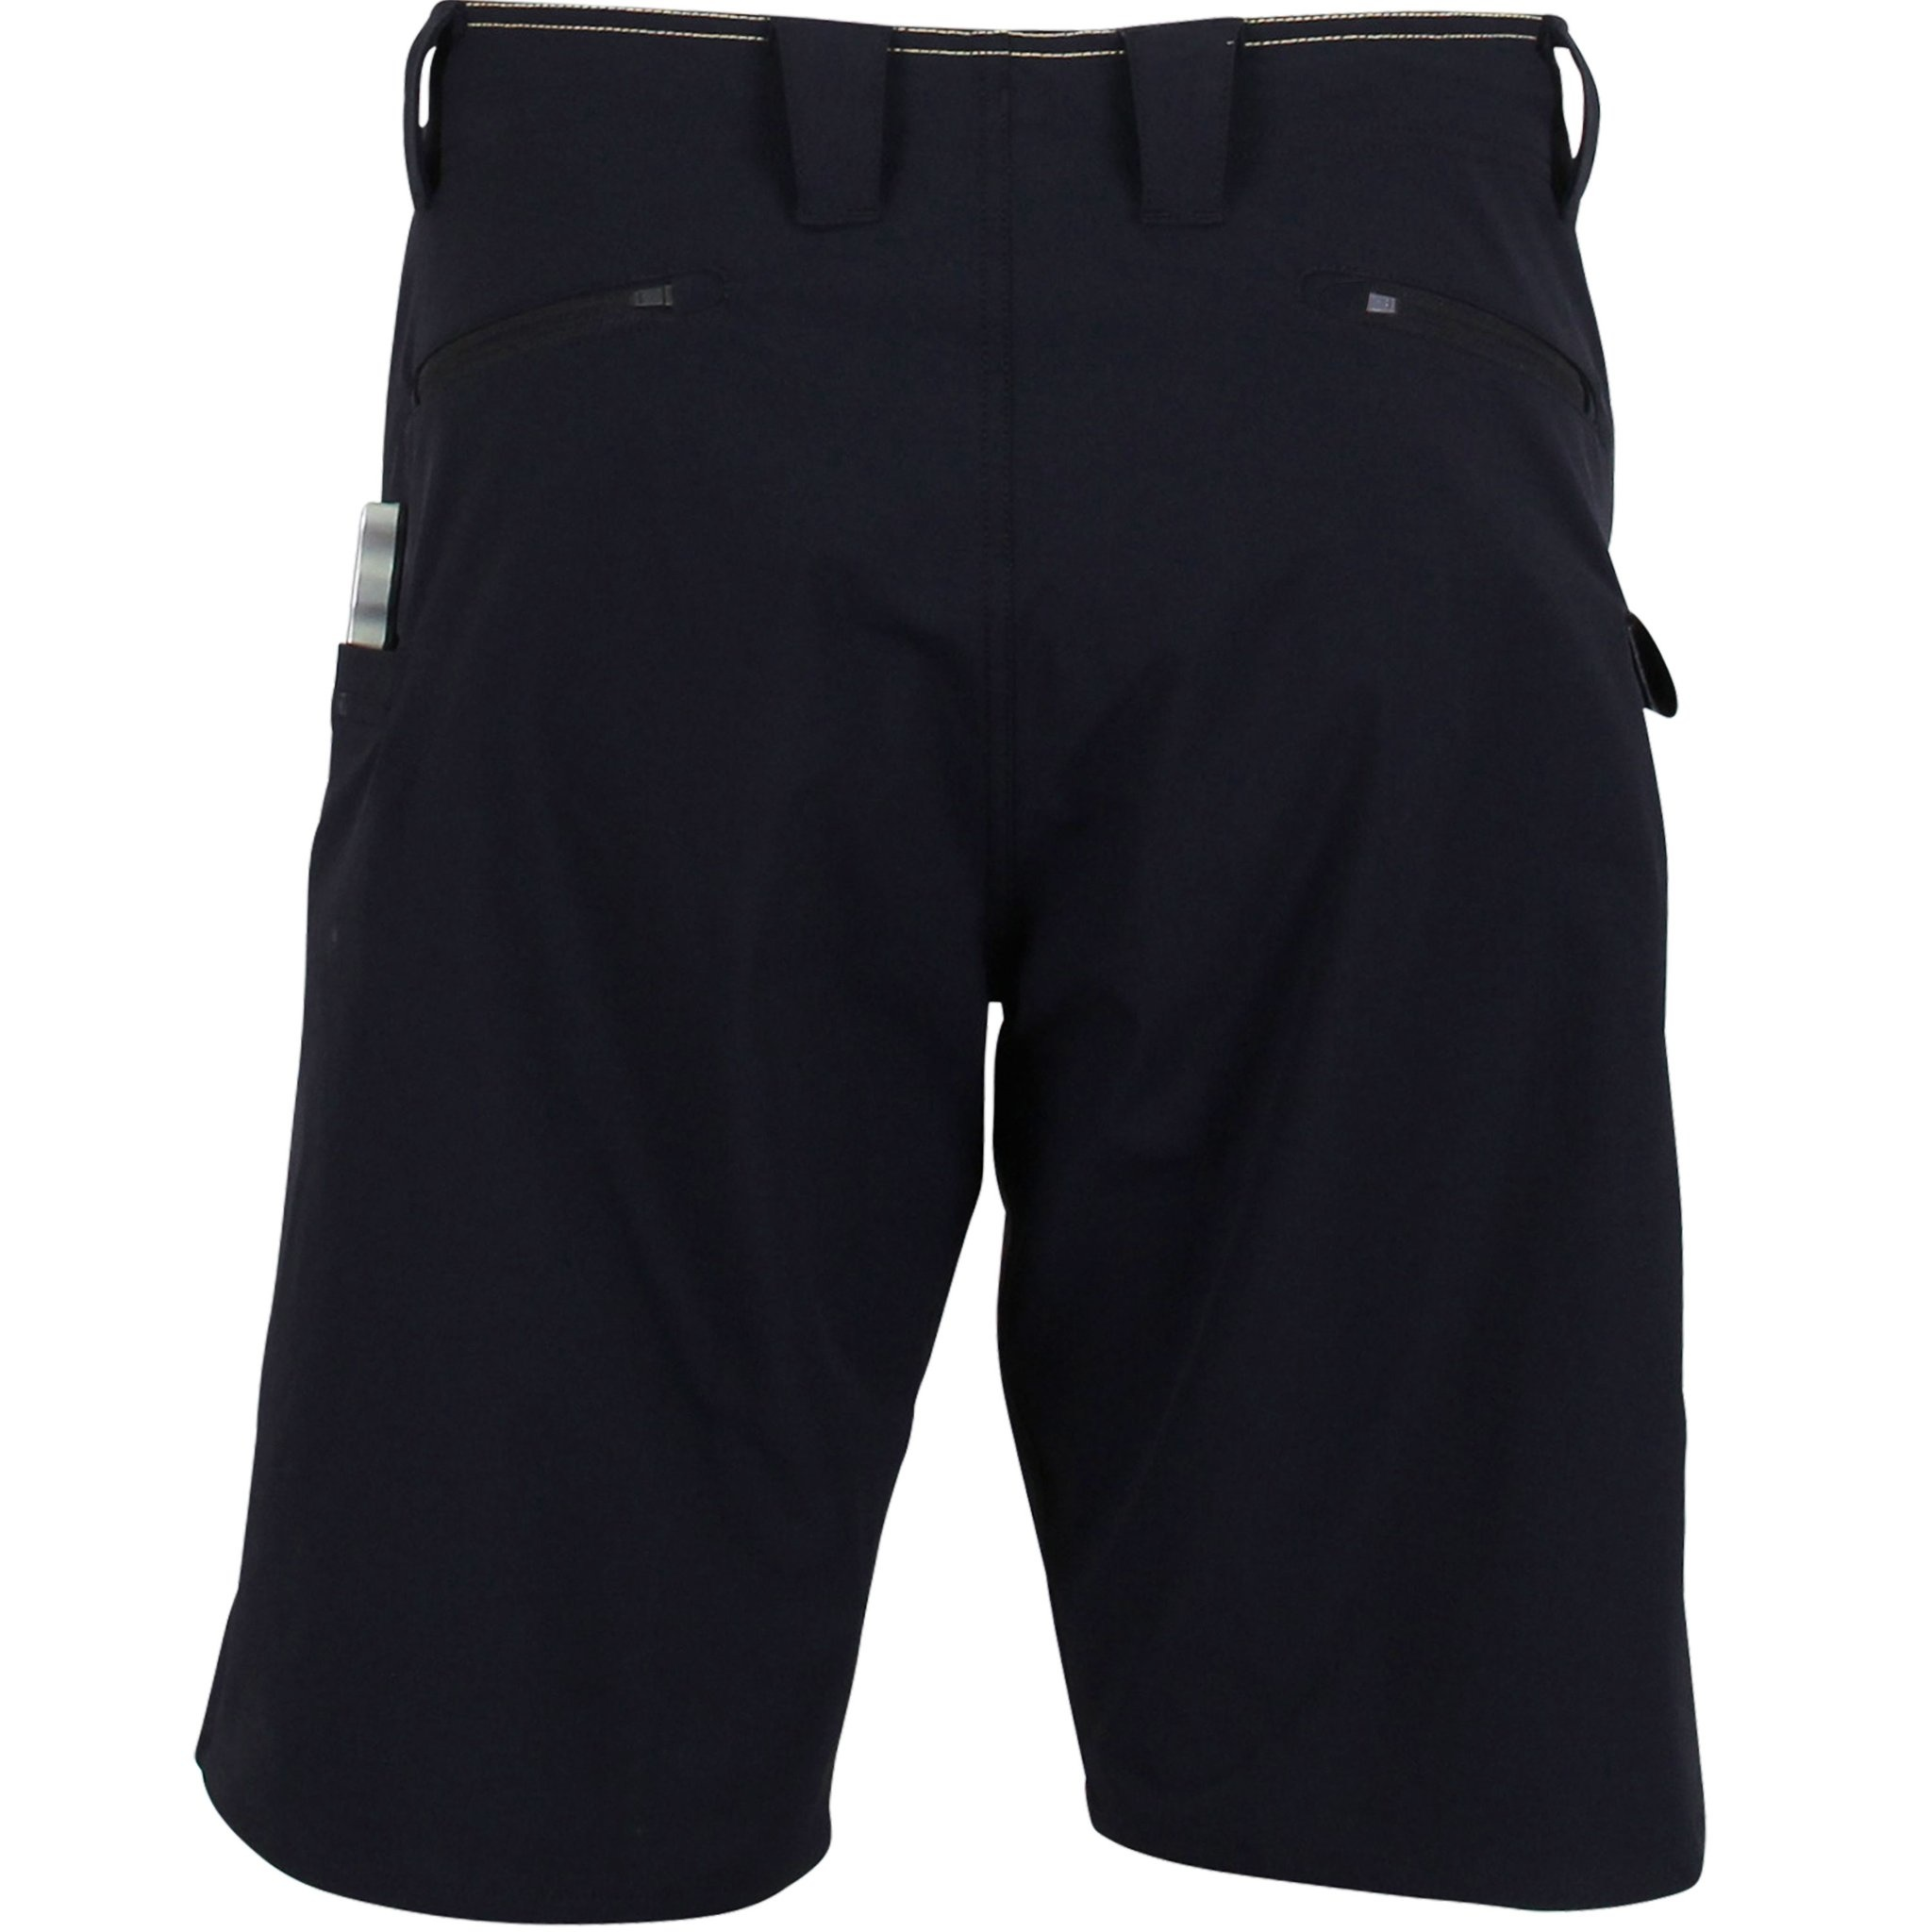 Aftco Overboard Shorts Black